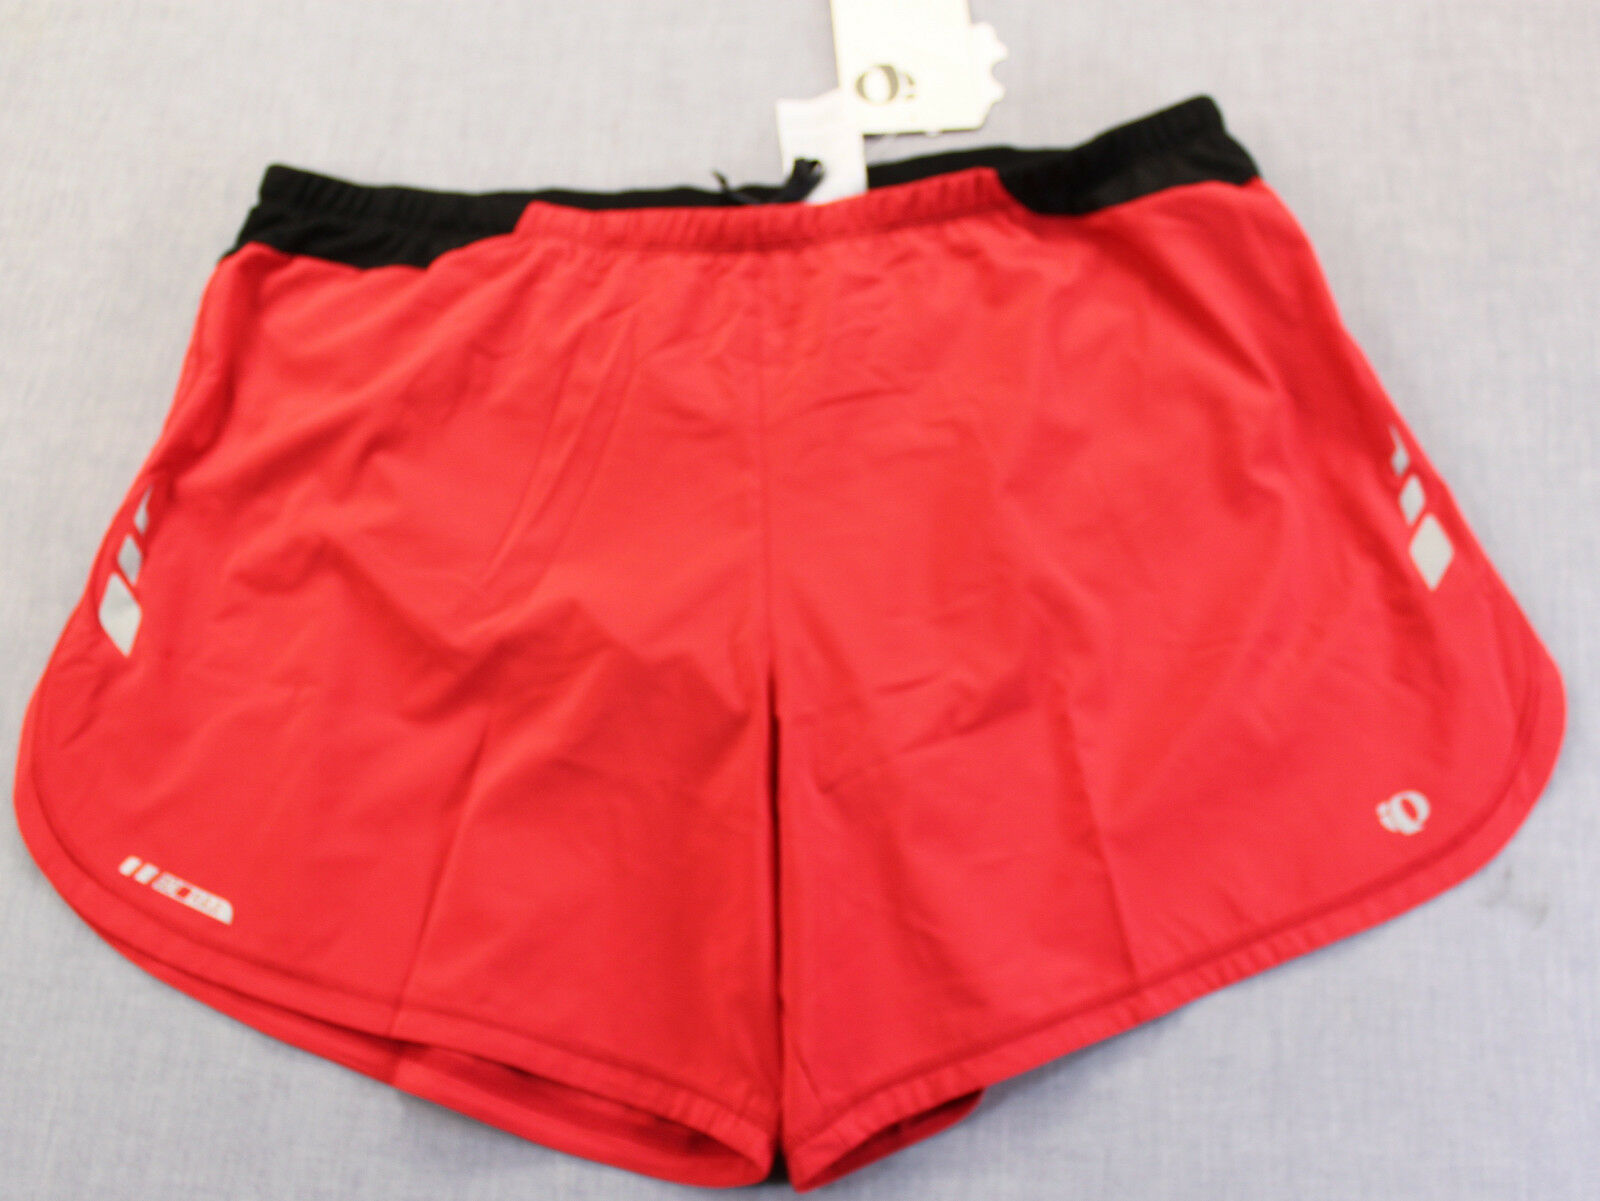 PEARL IZUMI  PRO SERIES Mens RED REFLECTIVE FLY ULTRA RUNNING SHORTS NWT 2XL   65  waiting for you